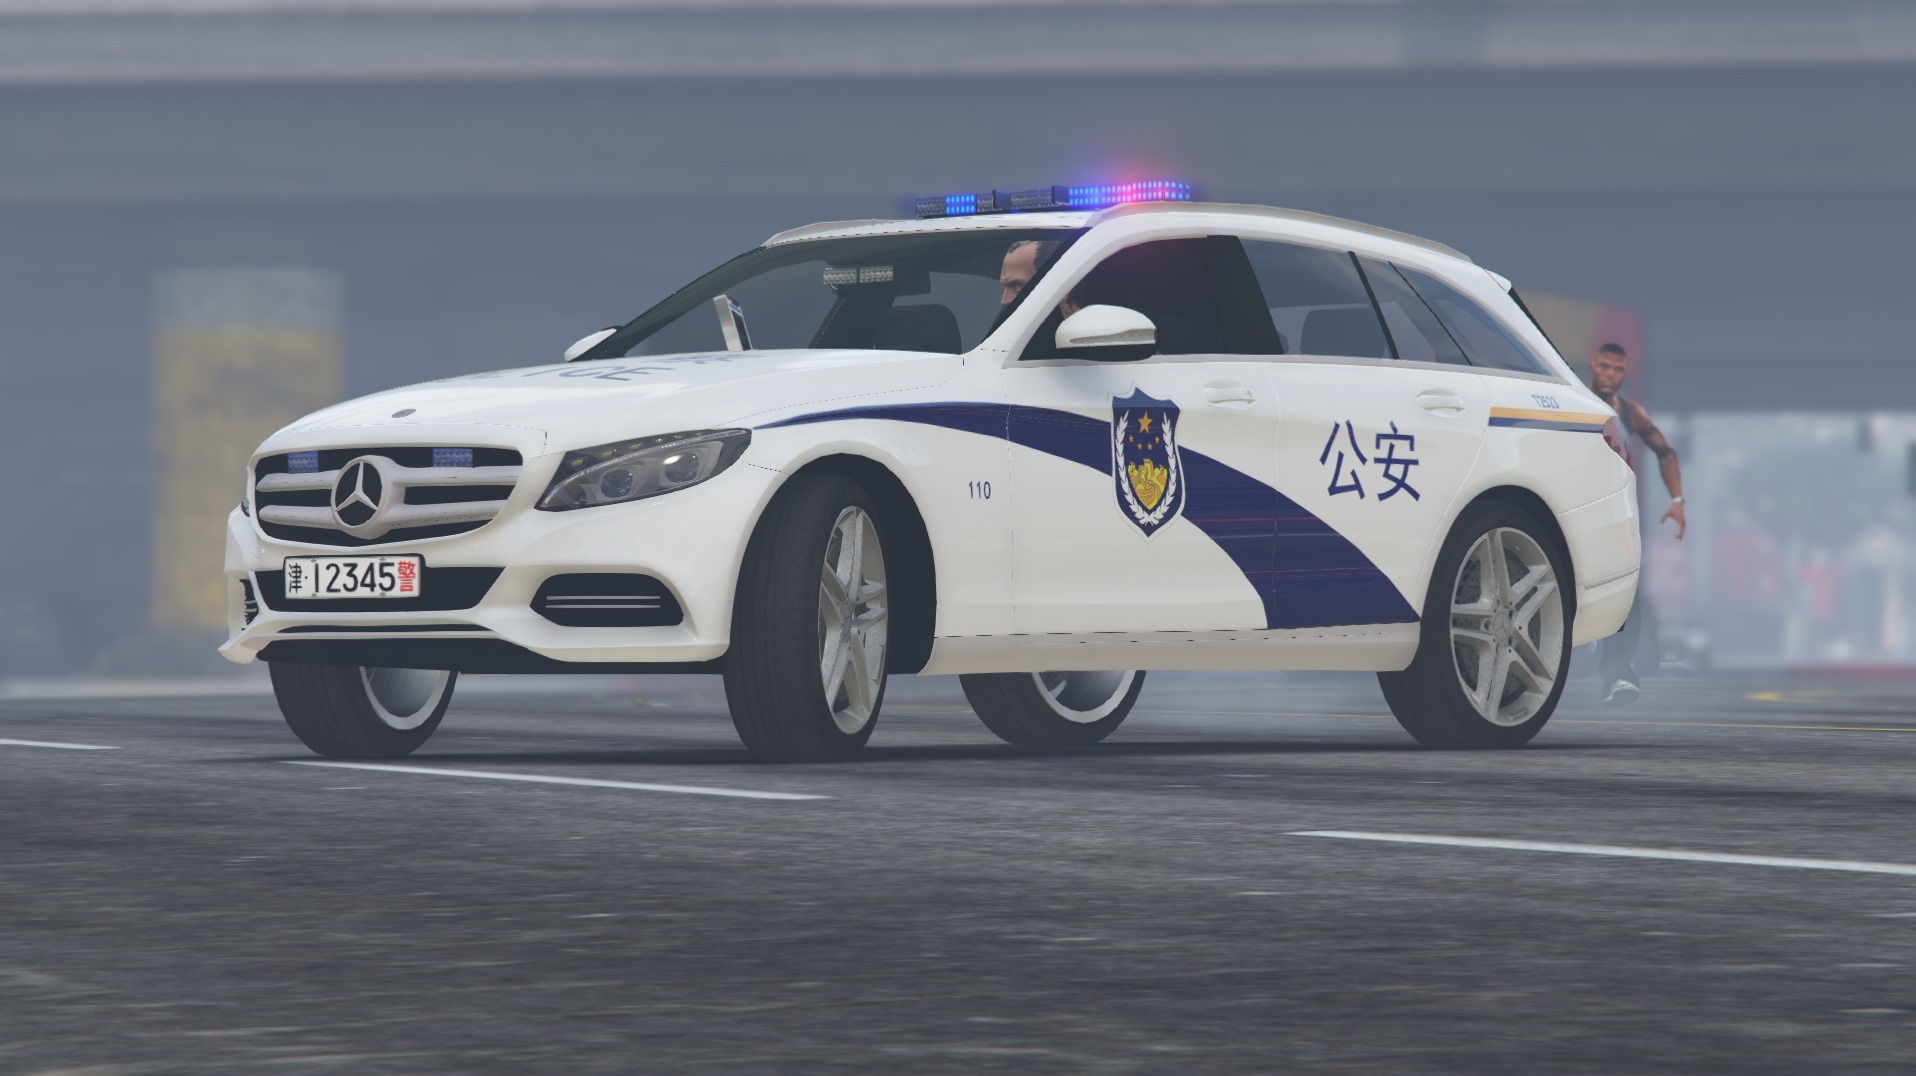 Mercedes benz c250 chinese police gta5 for Mercedes benz c 250